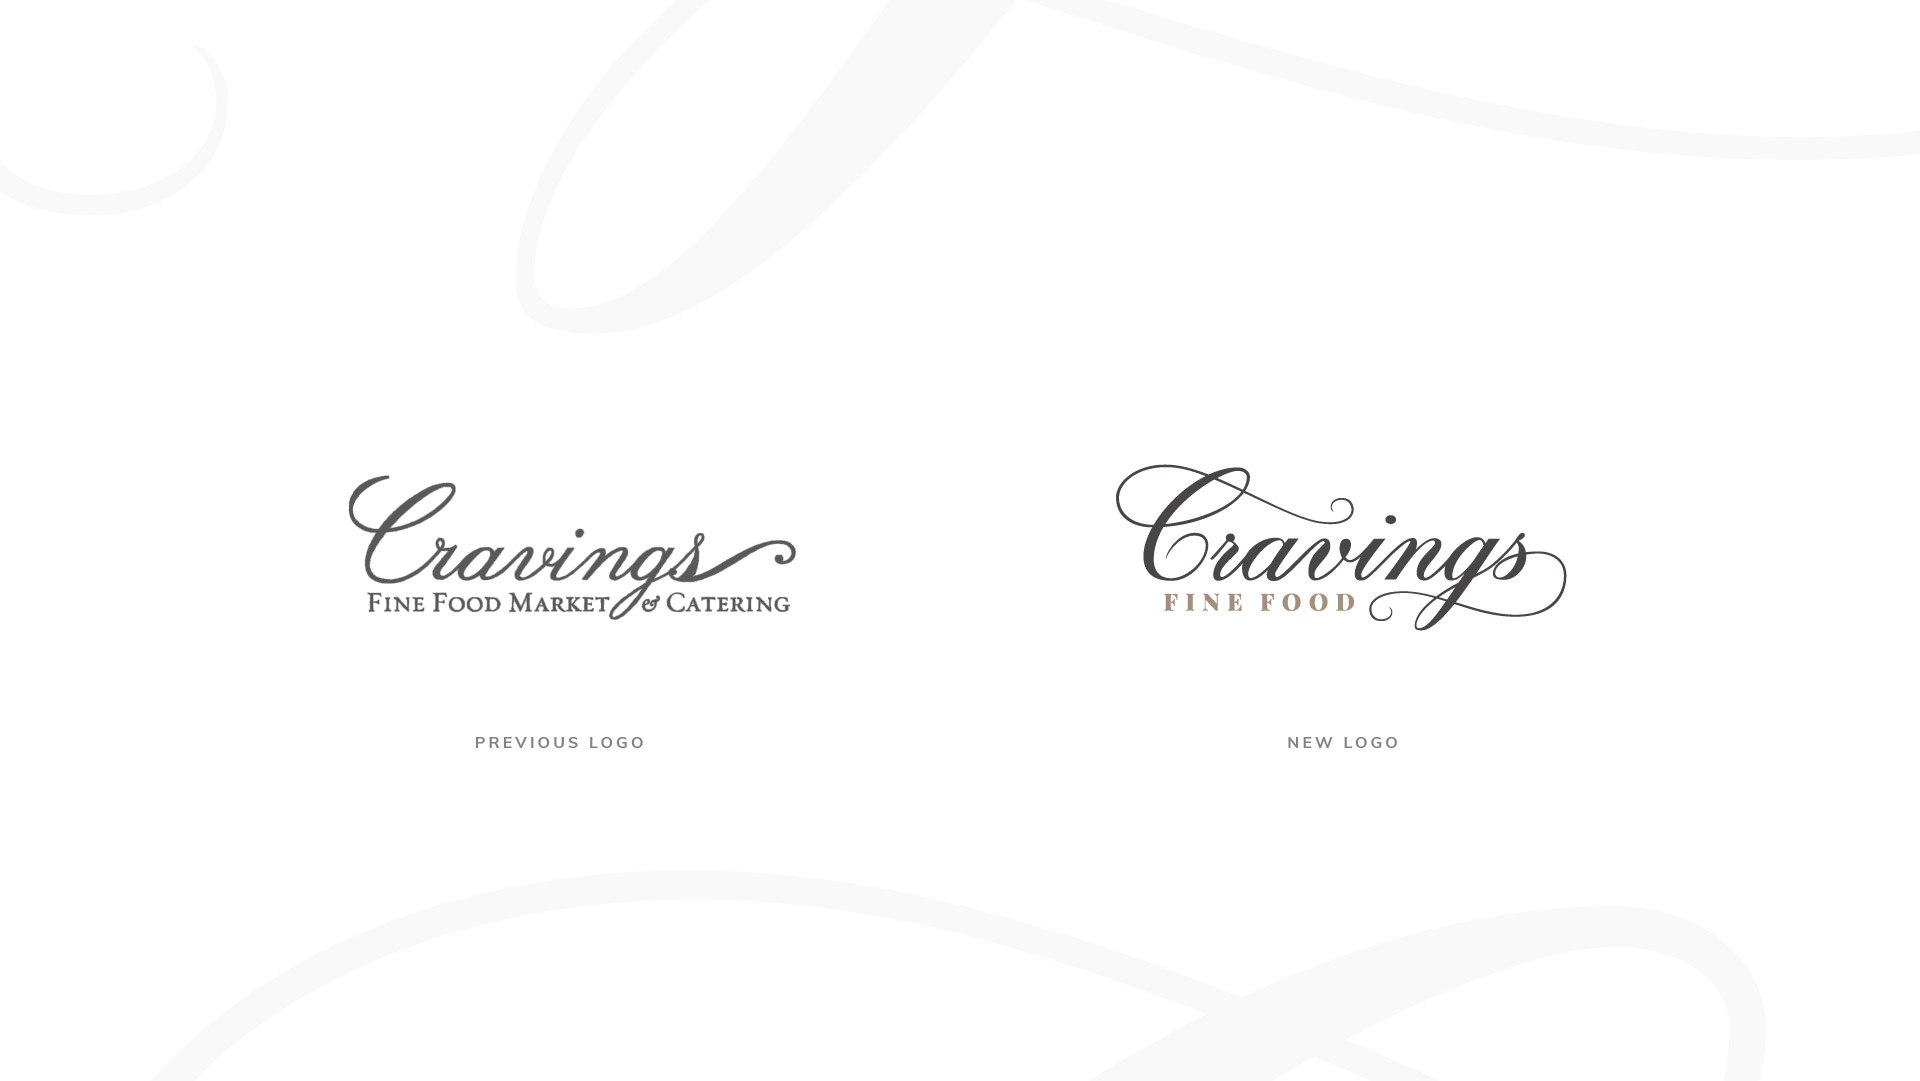 cravings fine food old logo and new logo